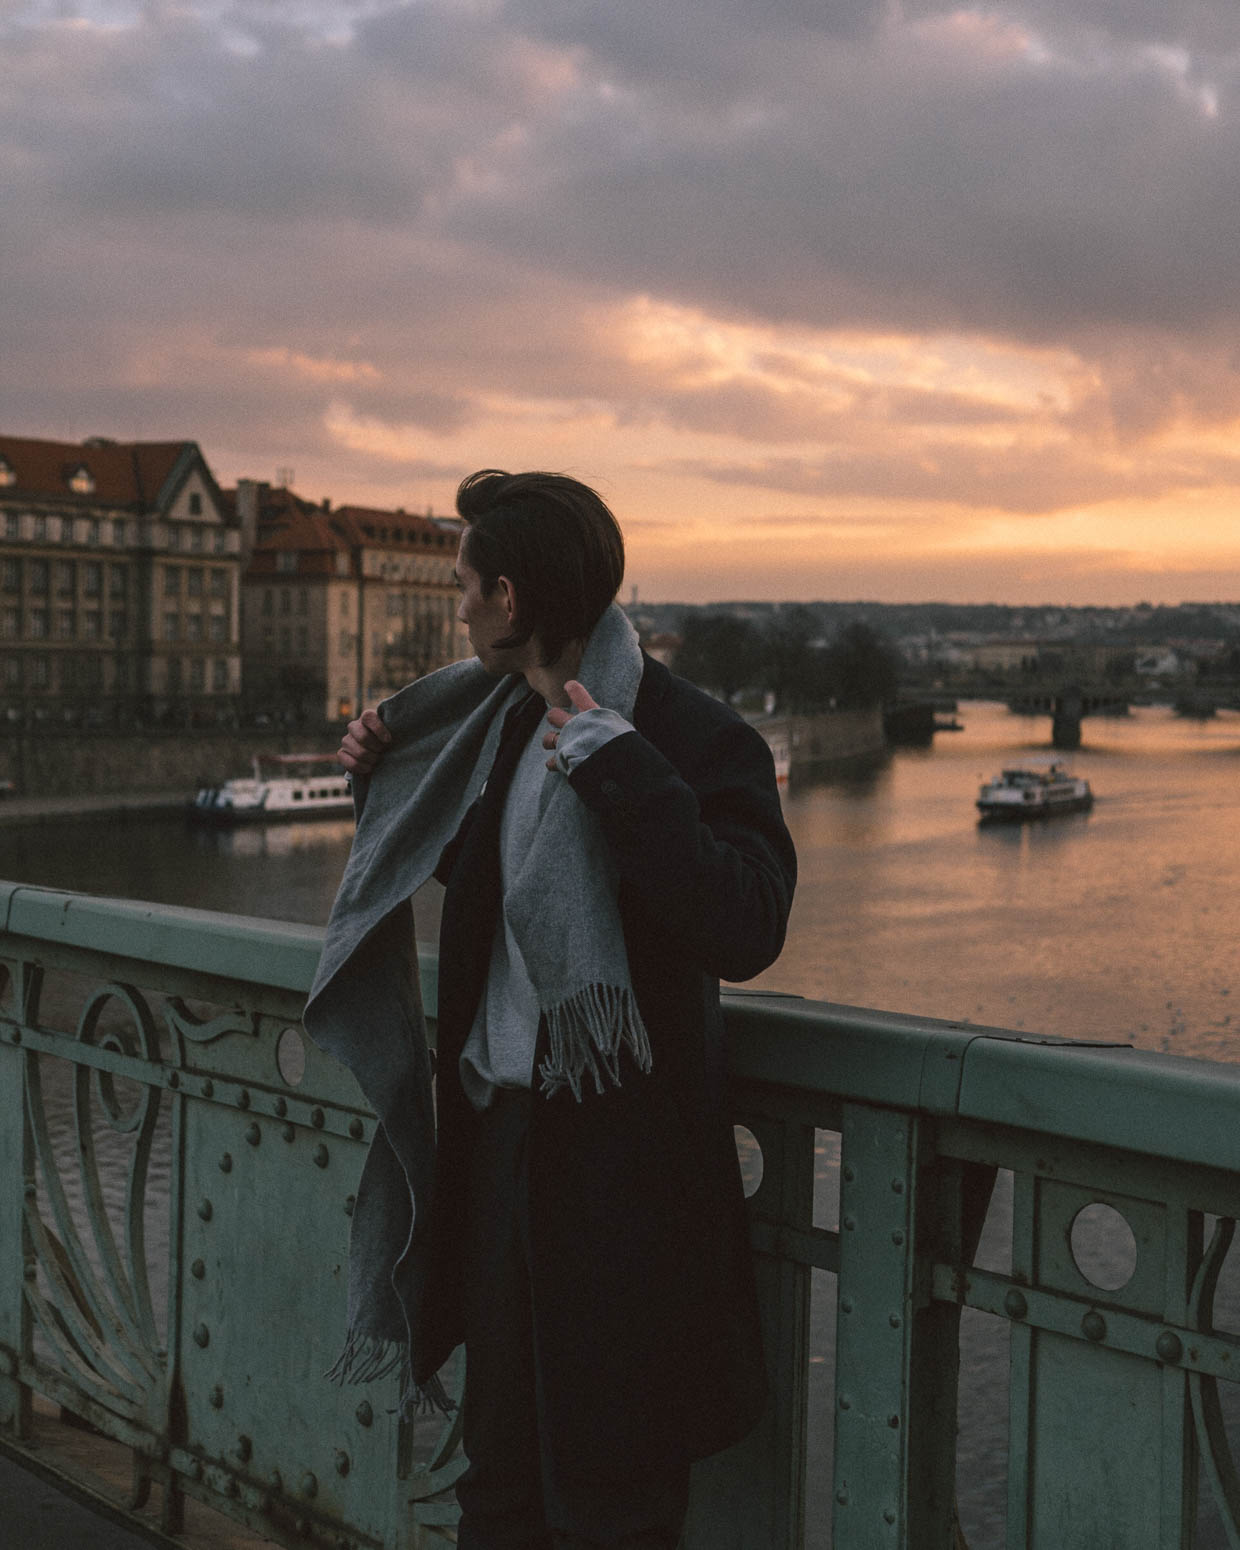 prag-praha-prague-travel-city-visit-view-sunset-carls-bridge-kralsbrücke-frank-scarf